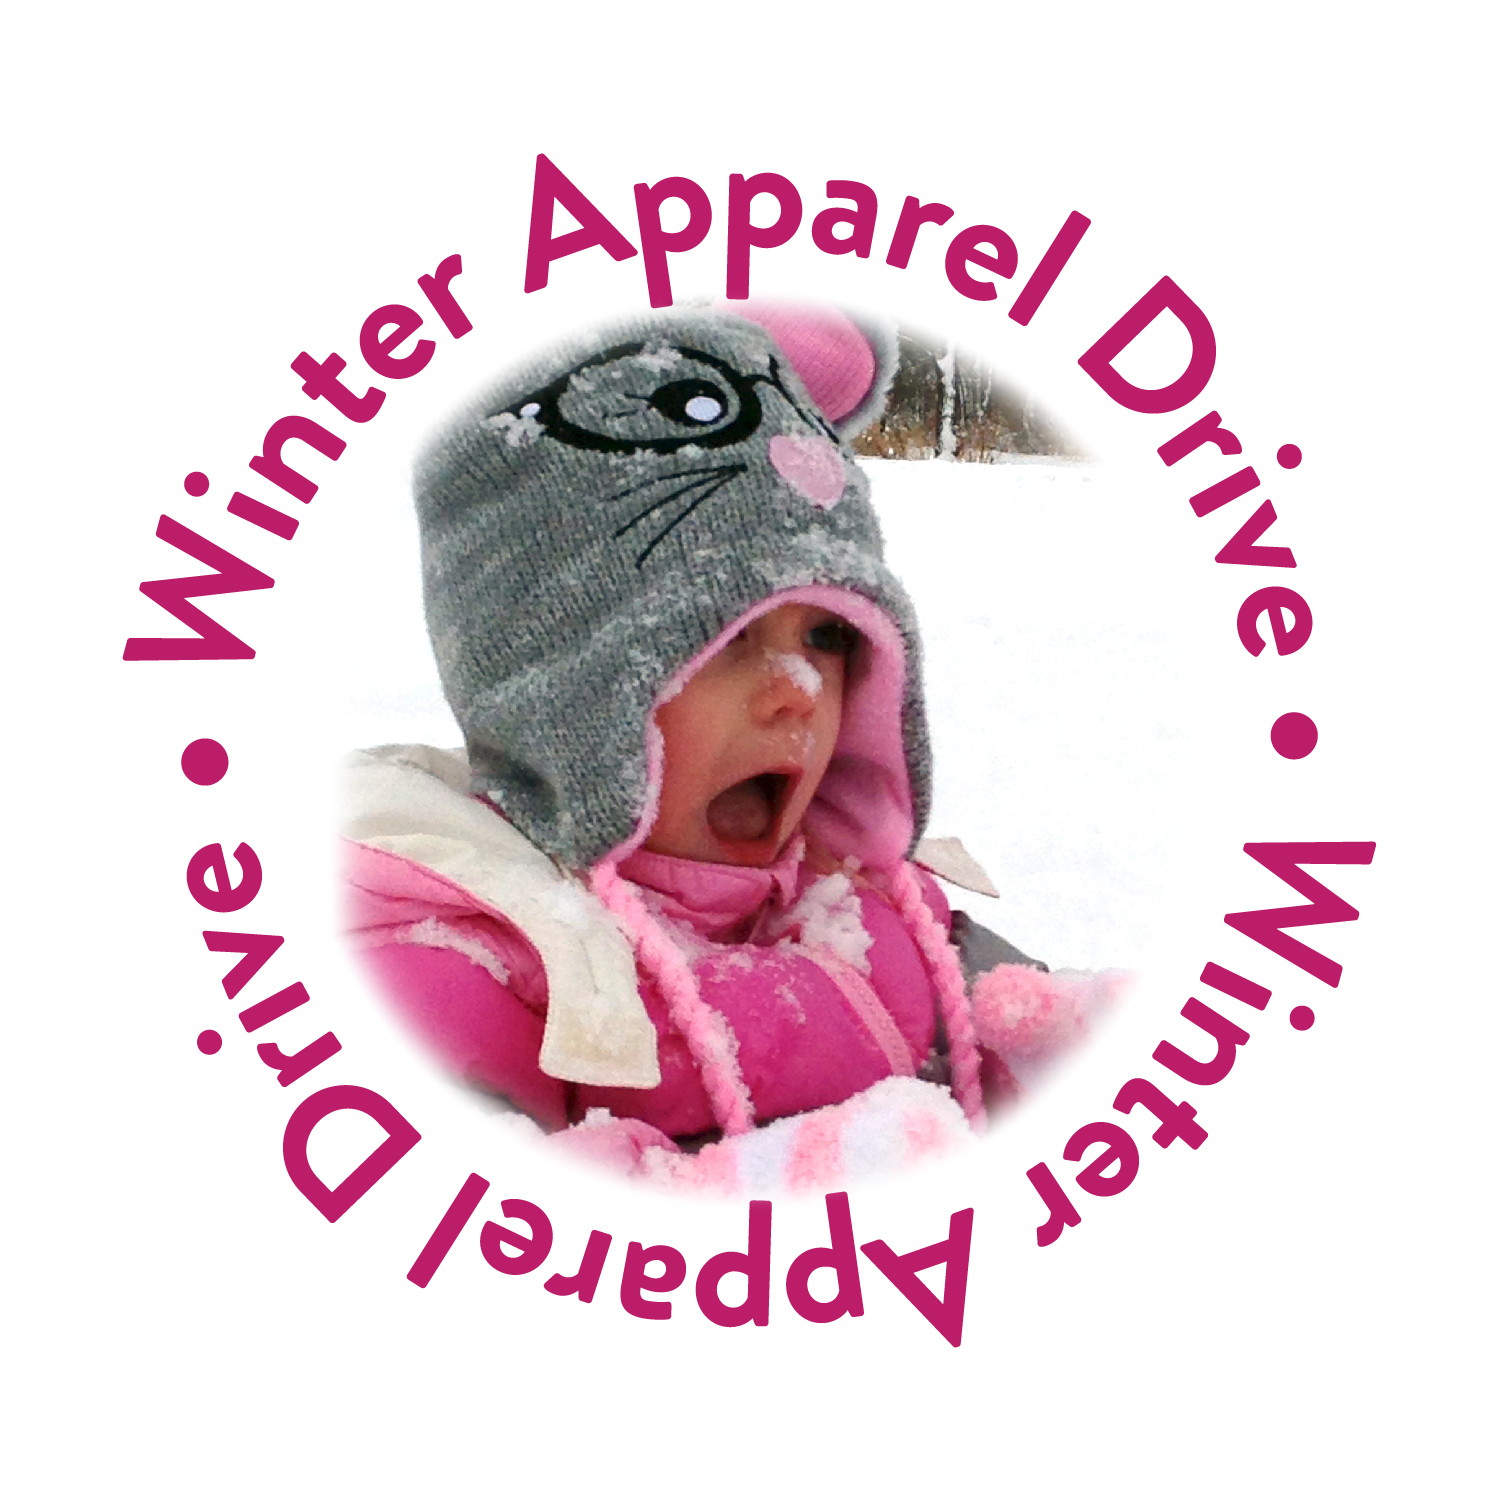 Winter Apparel Drive